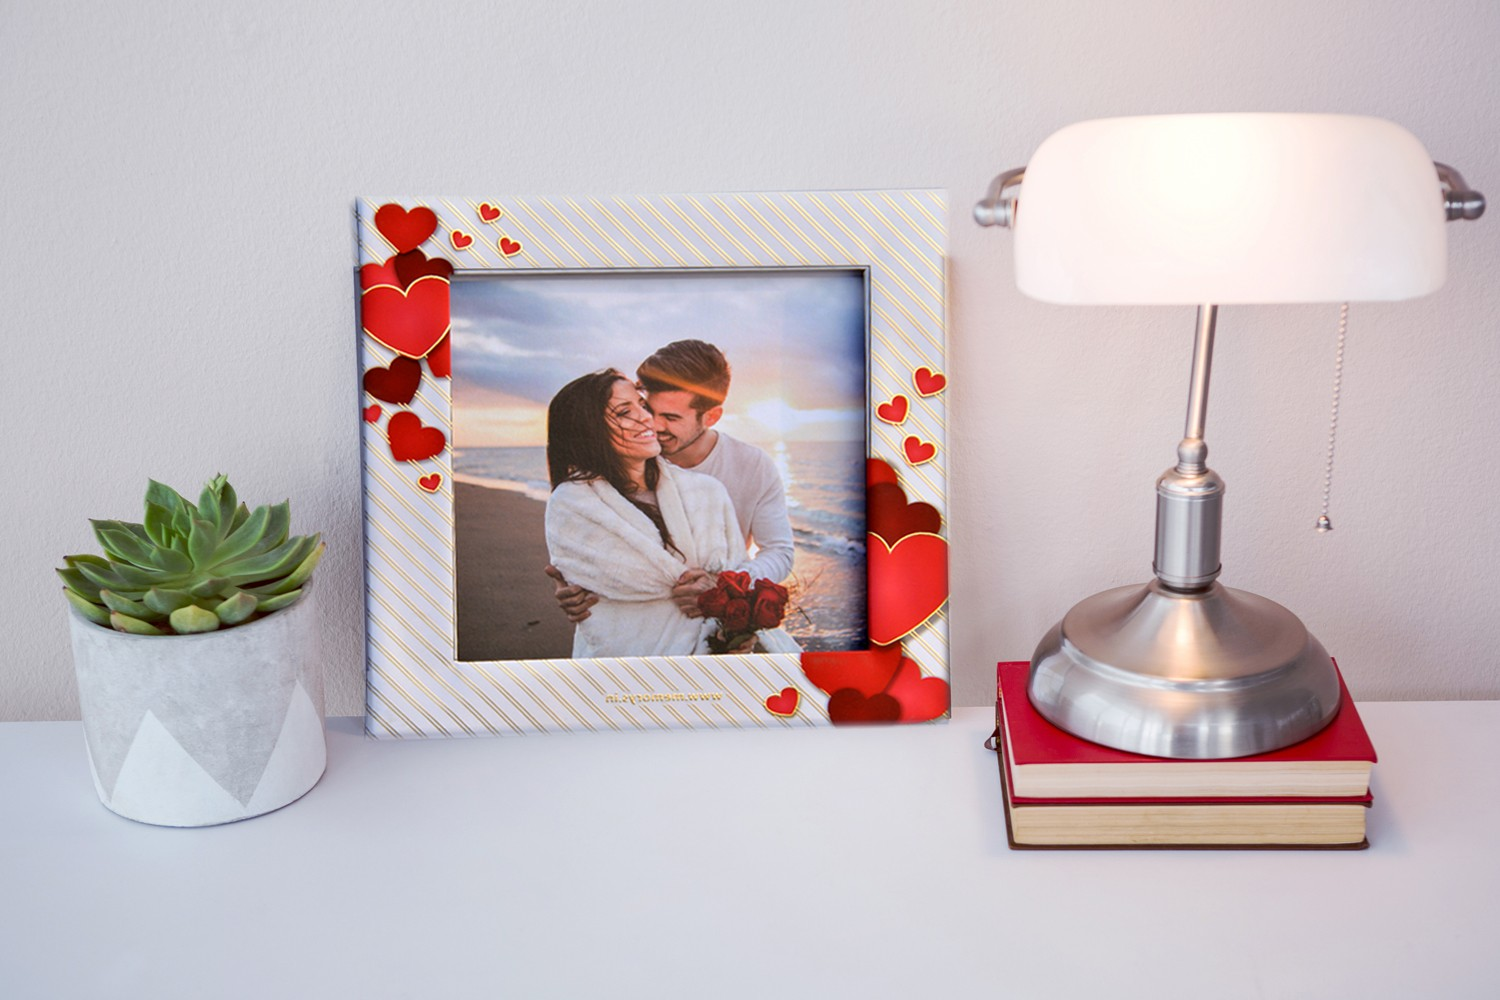 Personalised Photo Frames Online | Gift Customised Photo Frames in India -  Memorys